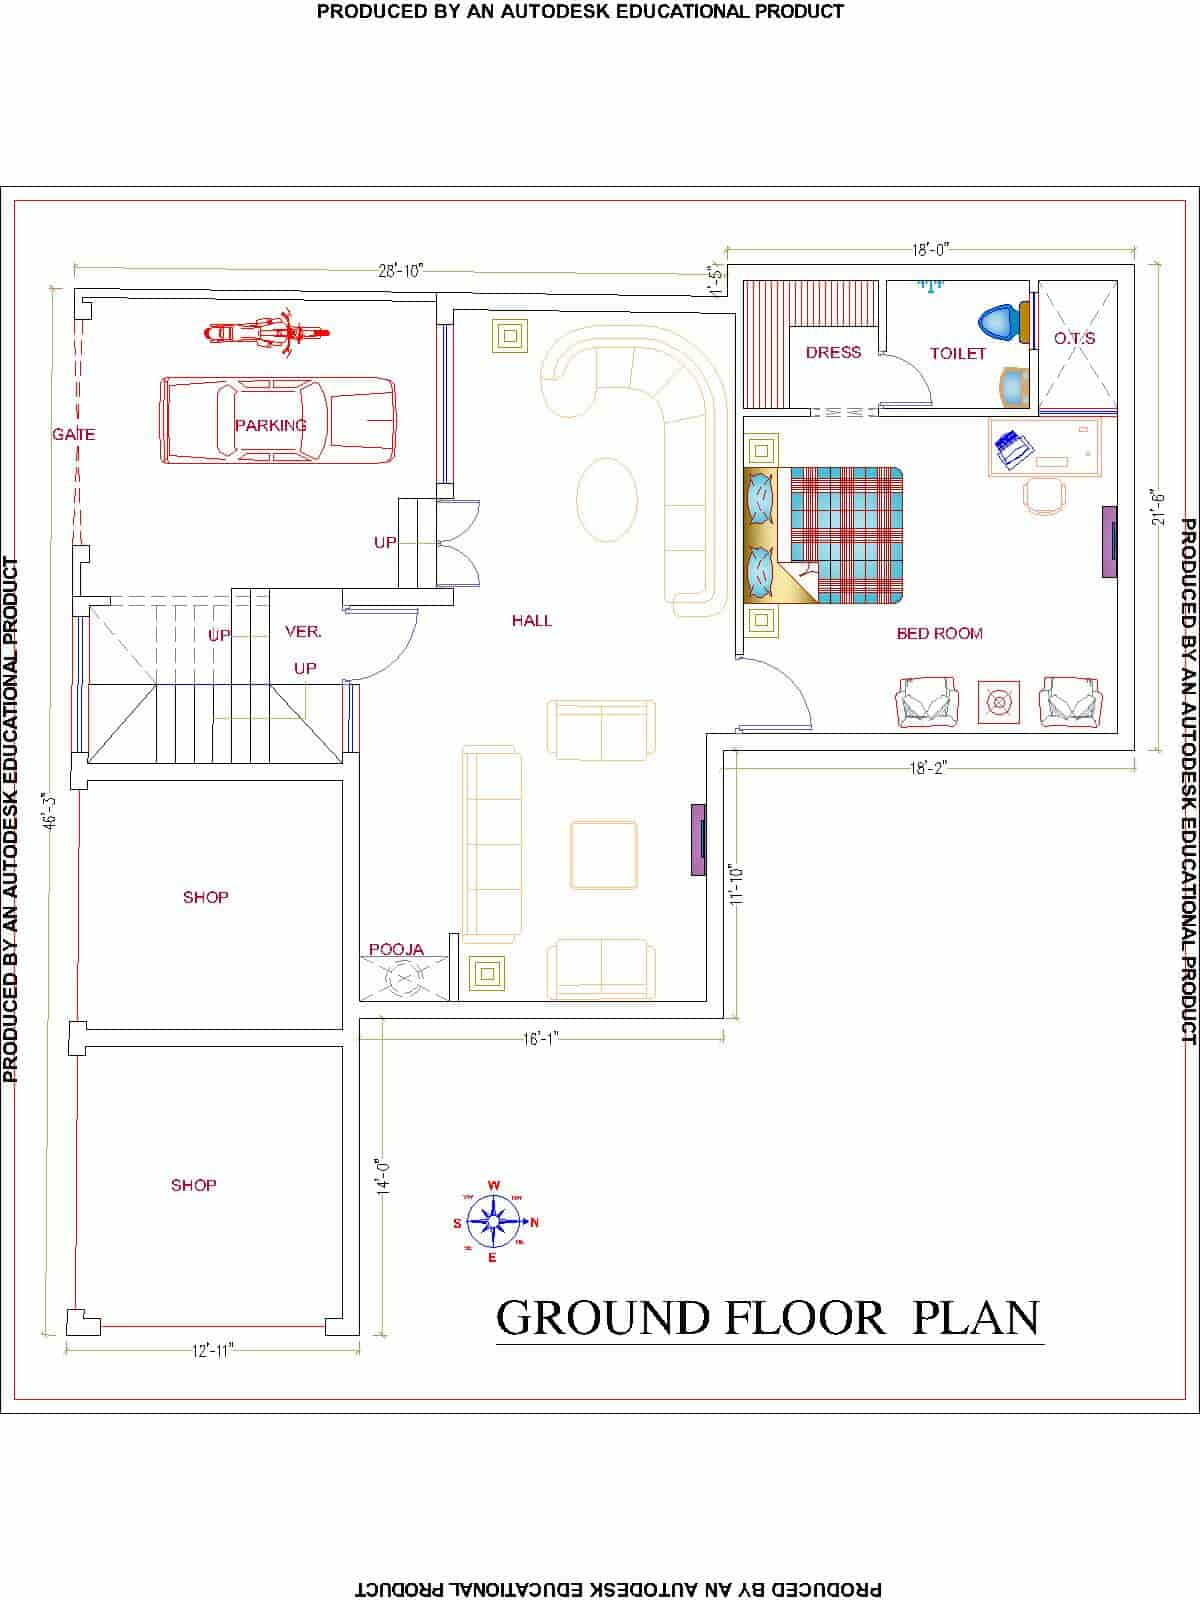 gallrey5f2a83f22c311R-2607-GROUND_FLOOR_PLAN.jpg